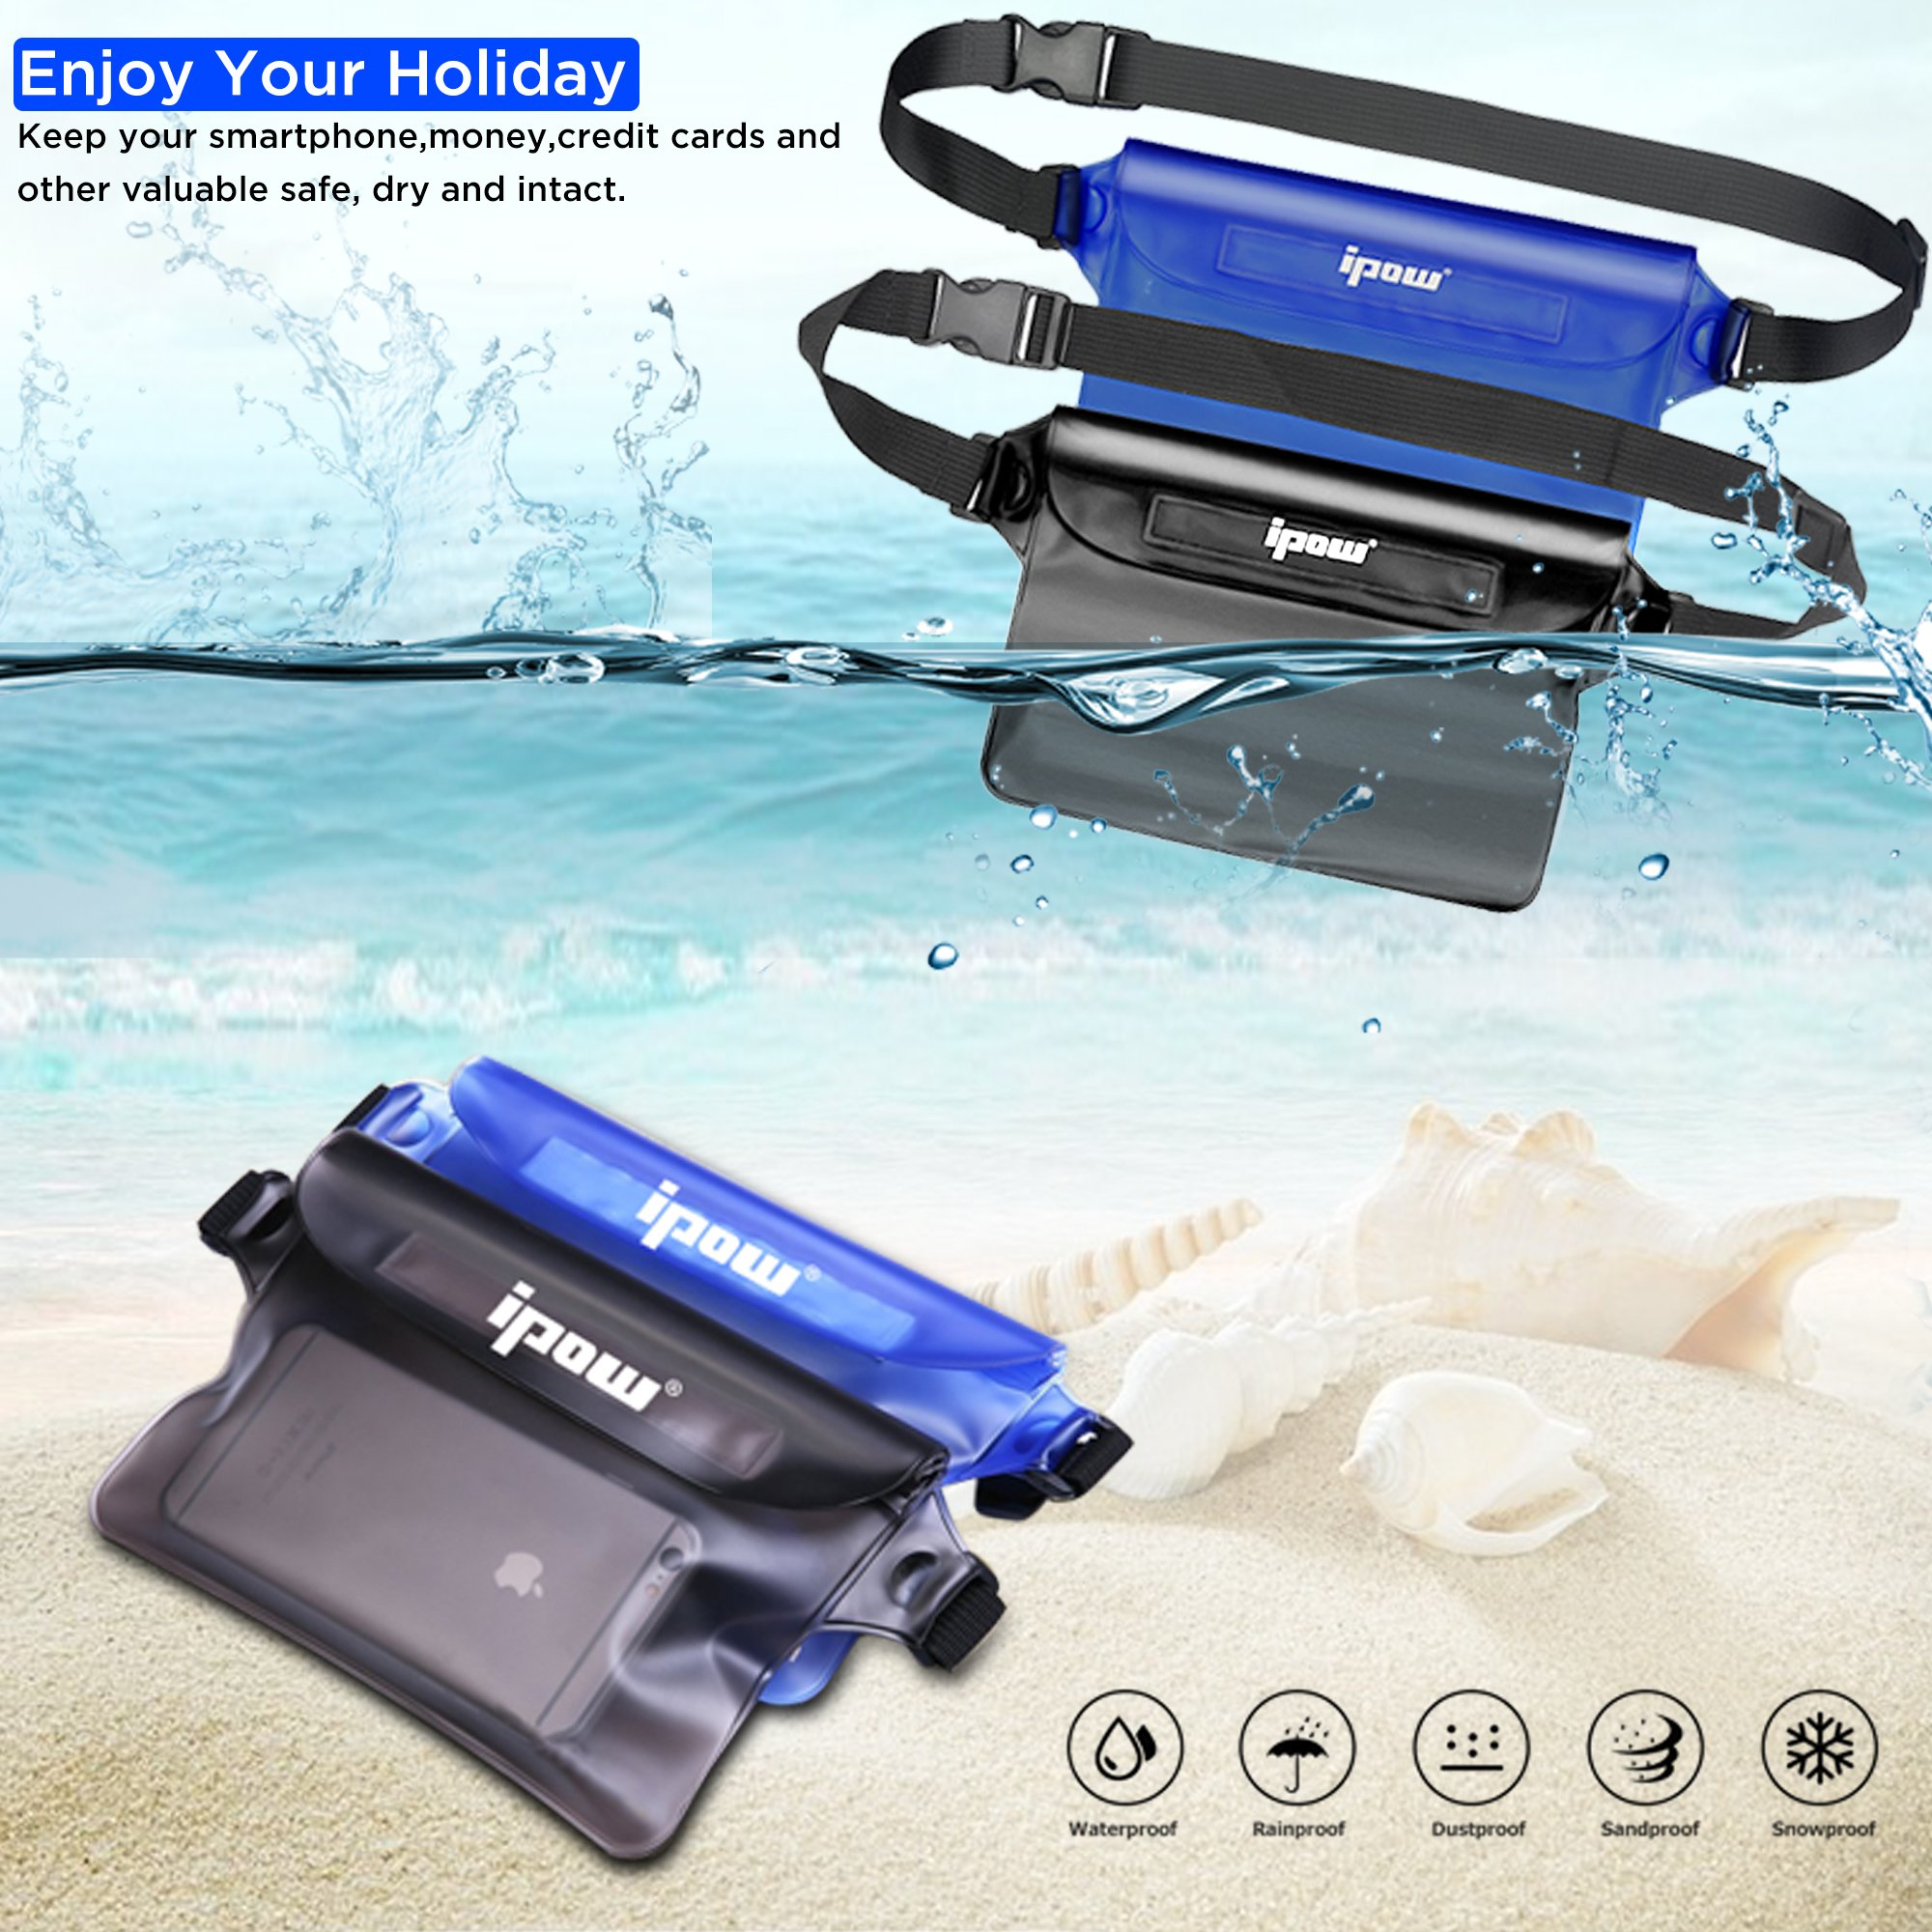 IPOW IP68 Waterproof Pouch with Waist Strap (2 Pack) | Best Way to Keep Your Phone and Valuables Safe and Dry | Perfect for Boating Swimming Snorkeling Kayaking Beach Pool Water Parks by IPOW (Image #2)